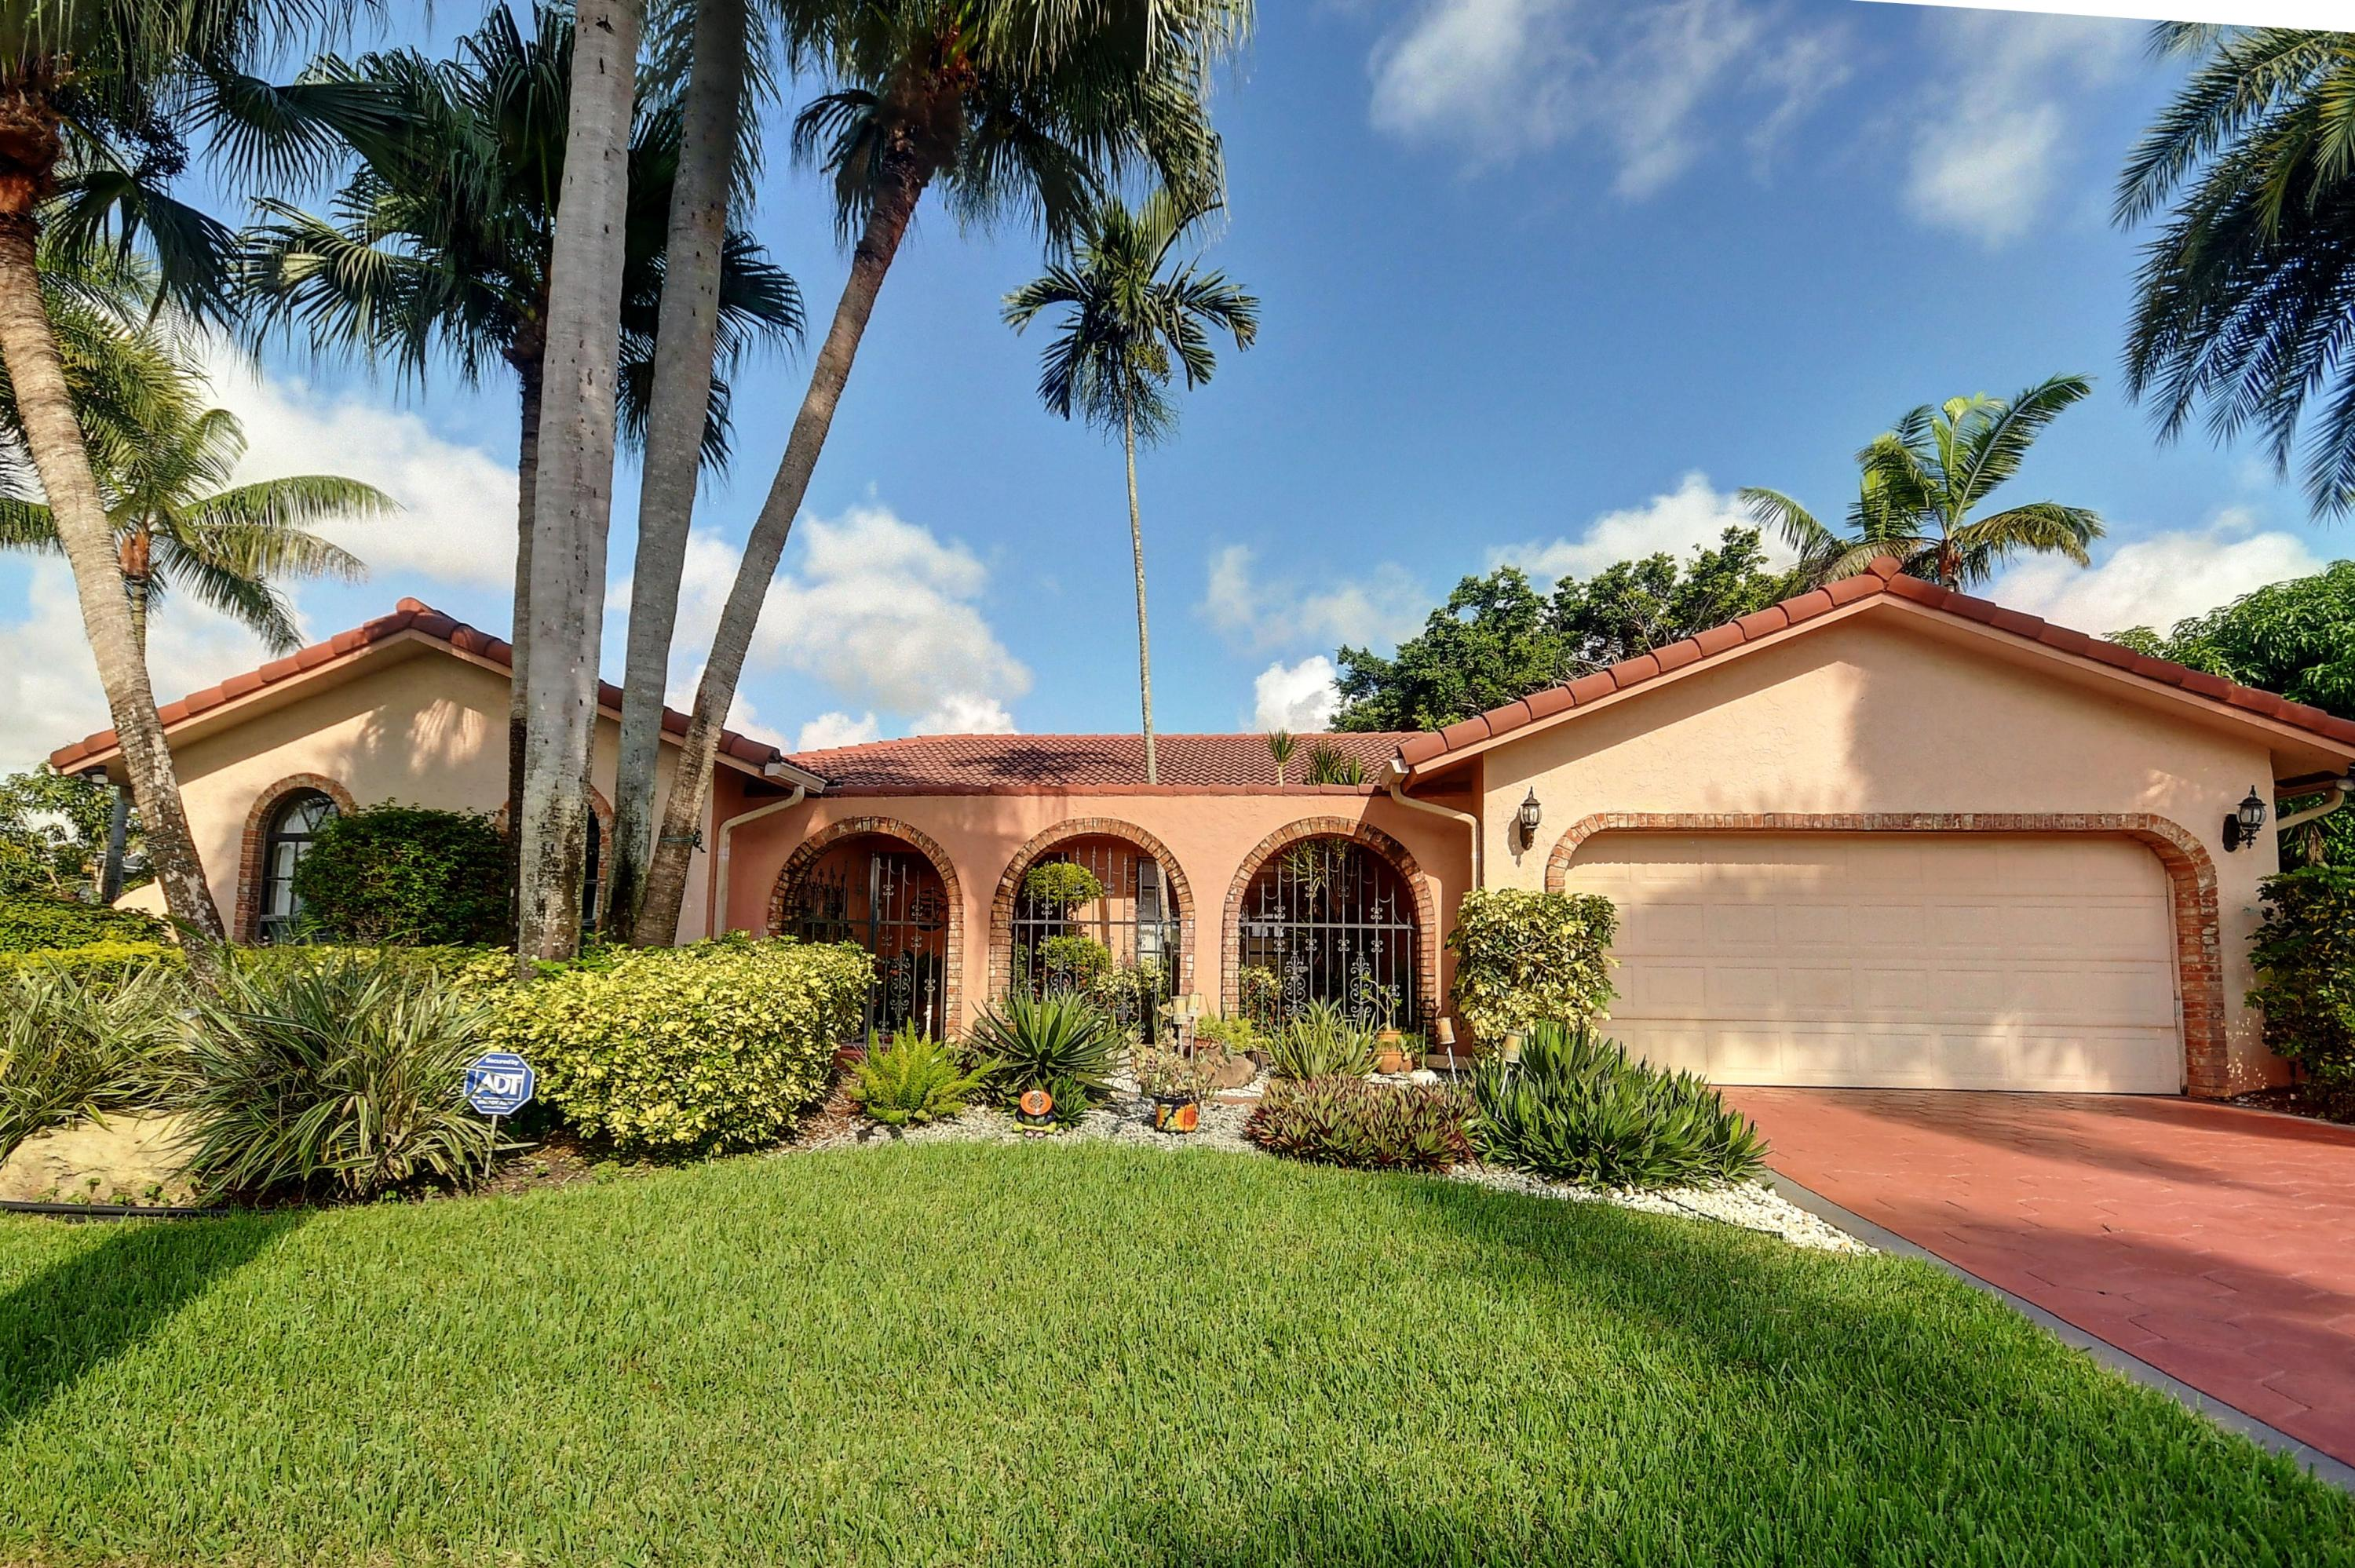 This is the house to show.  This unique home is in the estate section of Boca Greens and sits on a huge, double sized lot.  It is also one of the largest homes in the community. It has a beautiful custom kitchen with sun drenched breakfast area, huge great room, formal dining and an oversized master suite that has to be seen to be appreciated.  Walk to worship, close to shopping, huge parks. Boca Greens is a gated community of almost 600 homes located one mile north of Glades road on US 441. This community is also the home of the Boca Greens County Club. All residents can play the course on a pay for play basis. No membership is required. But for those who do want a country club experience there are a number of non-equity memberships available. Premium cable package and high speed Intern